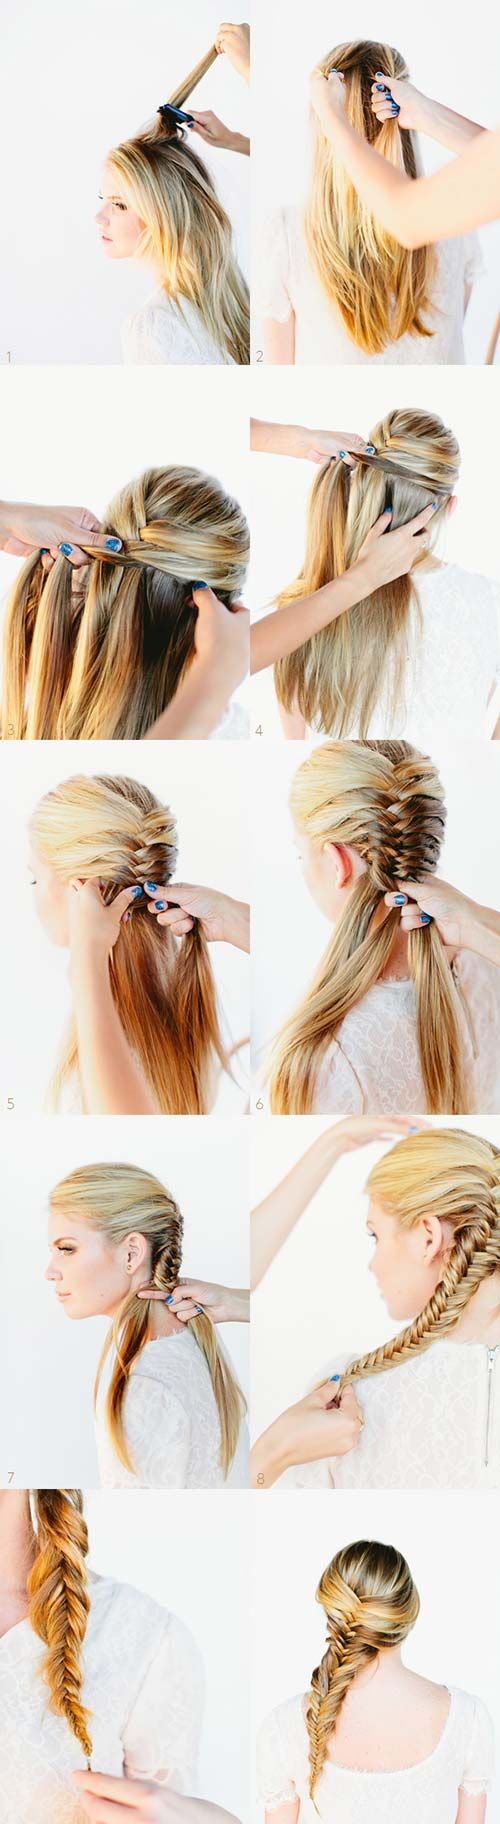 Wondrous 1000 Ideas About Fishtail Braid Hairstyles On Pinterest Hairstyle Inspiration Daily Dogsangcom